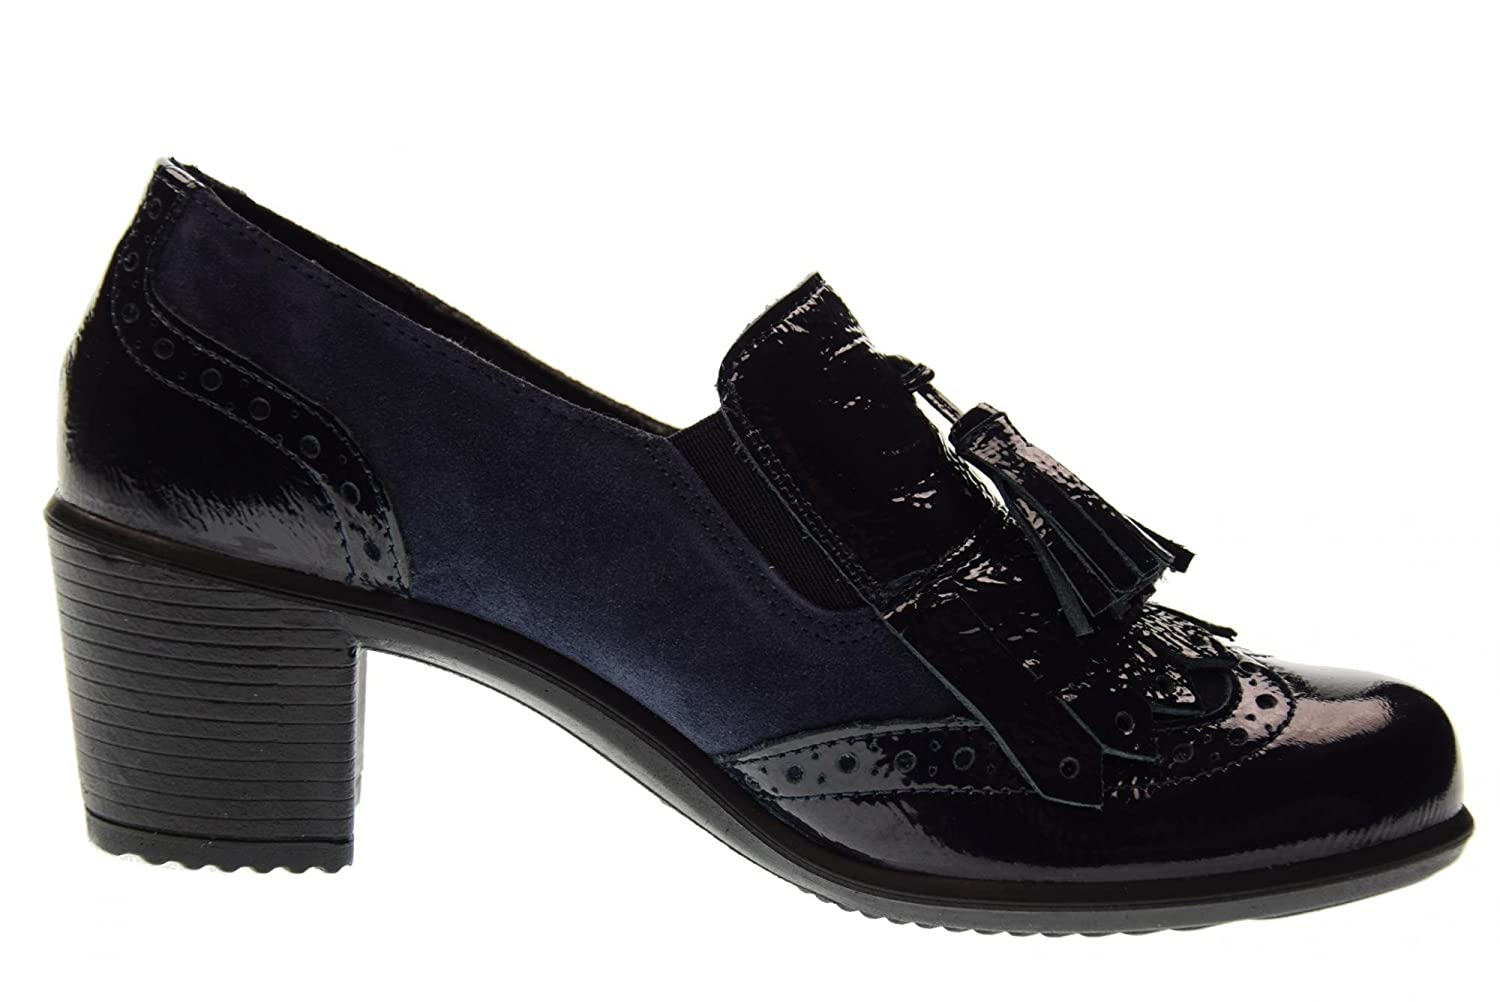 ENVAL SOFT Womens Shoes with Heel 89314//00